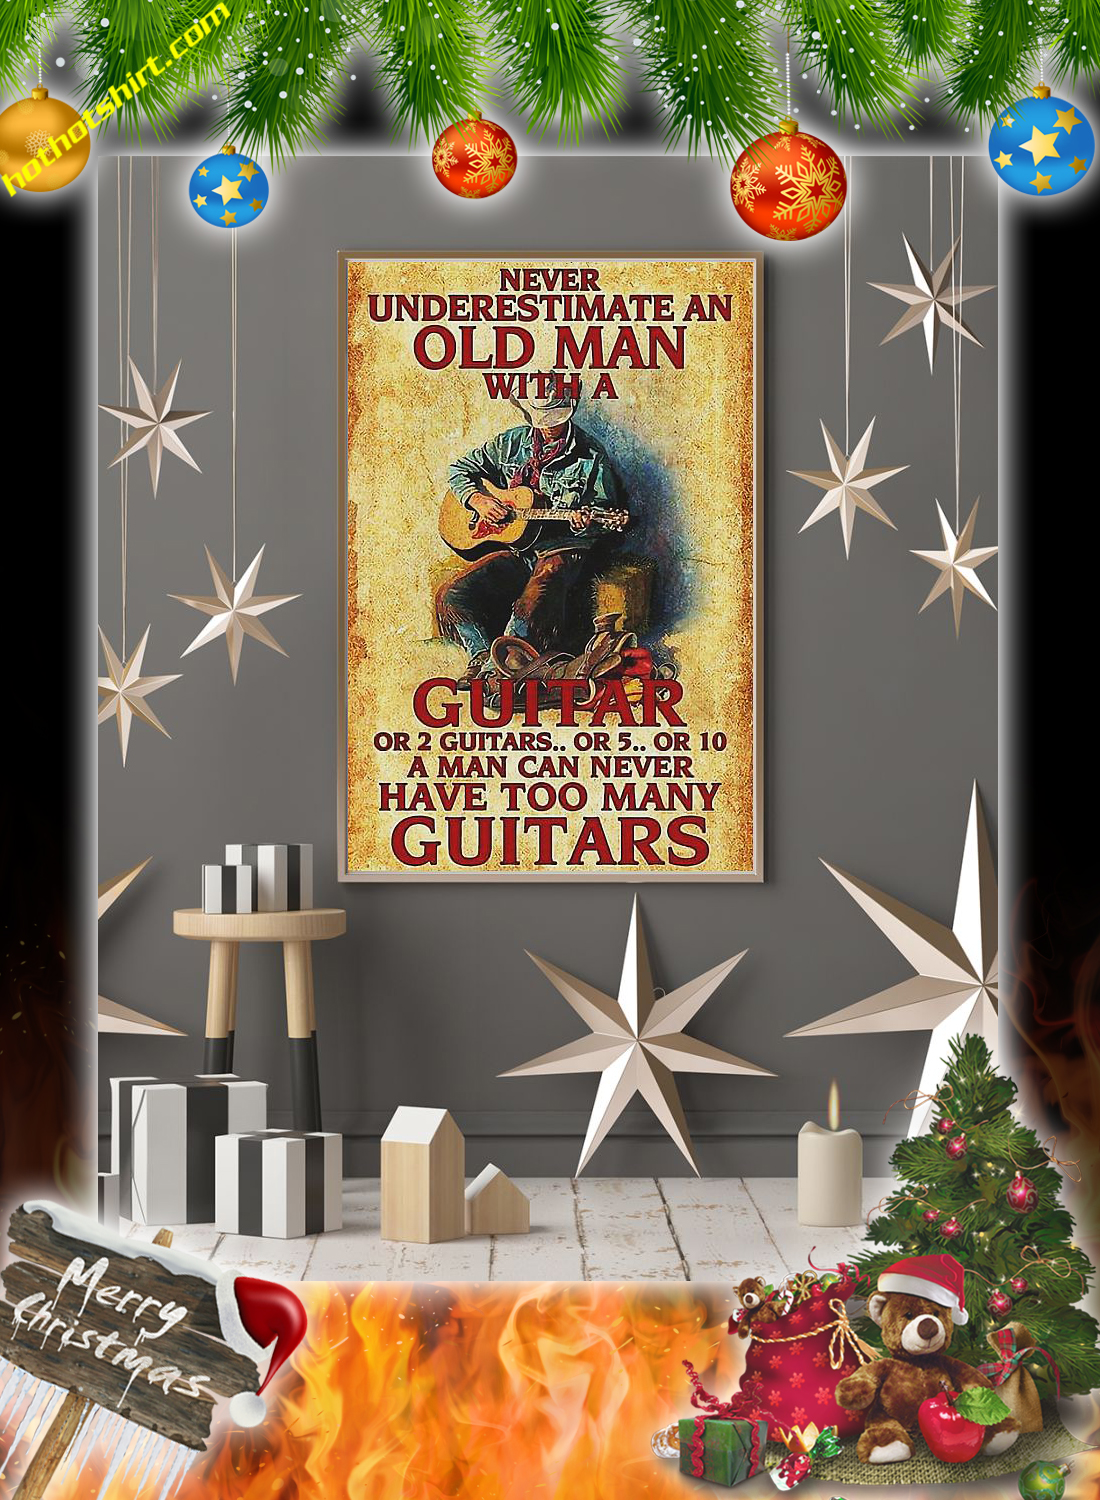 Never underestimate an old man with a guitar poster 2